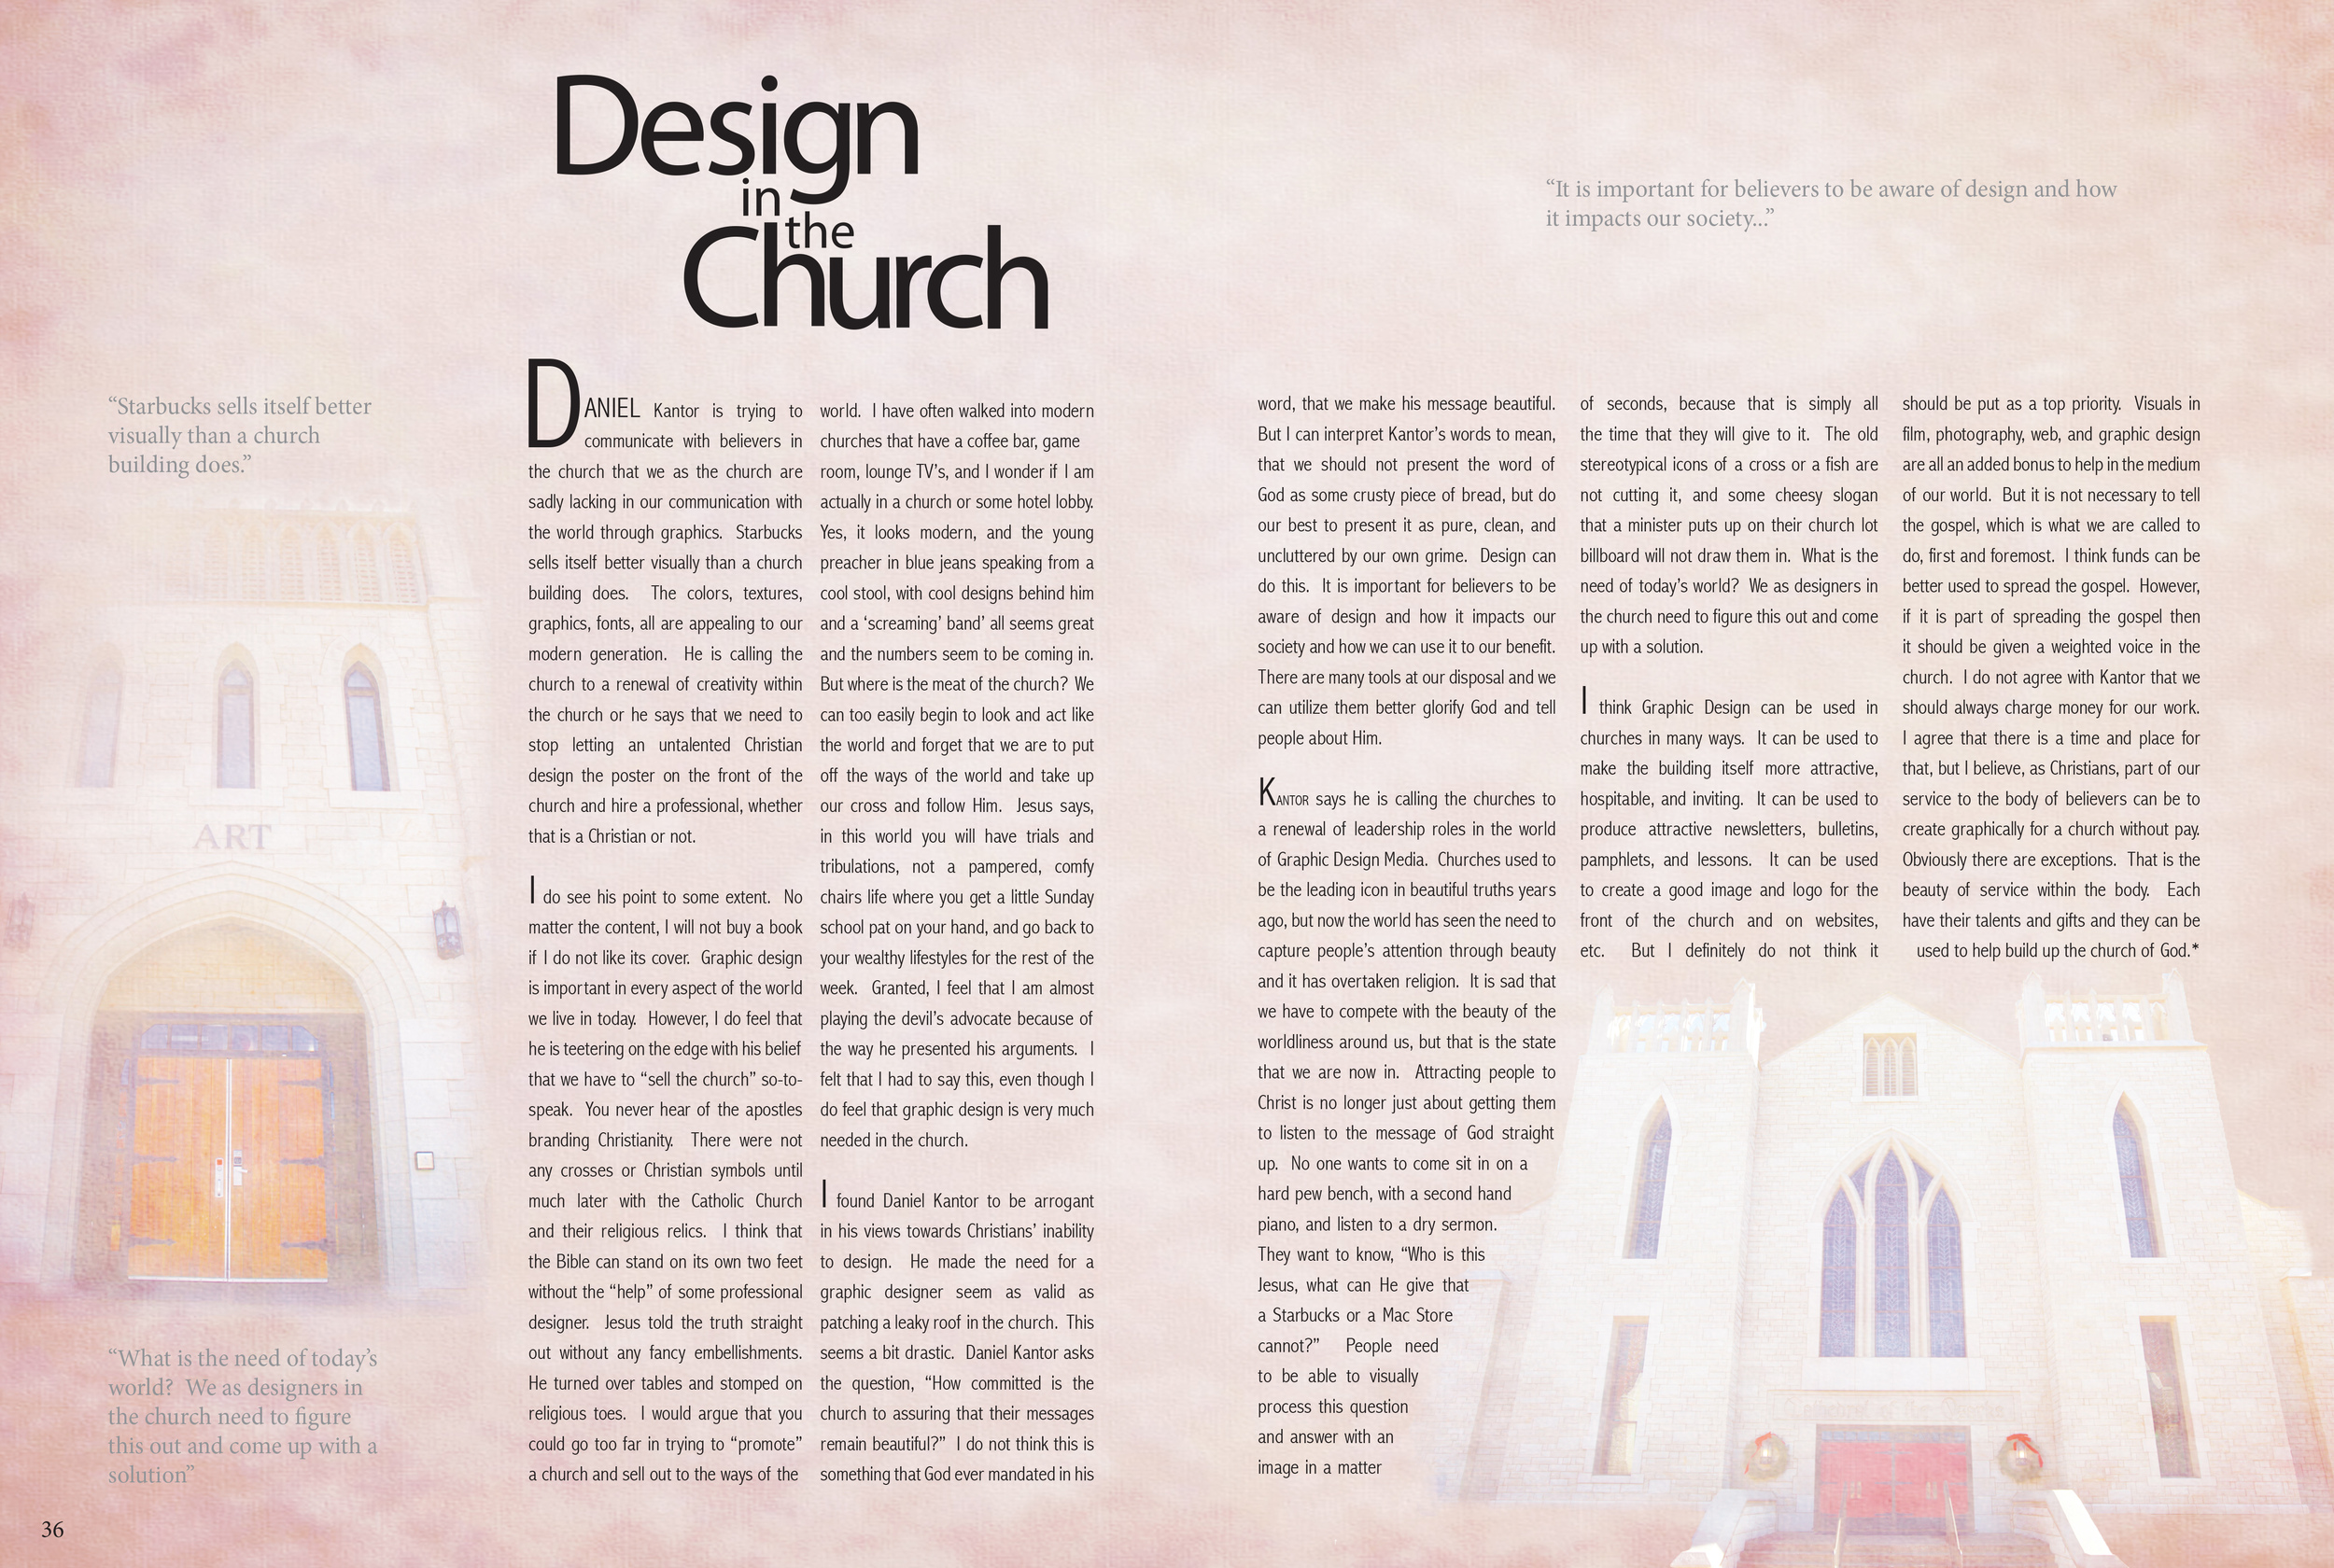 """The article is a response paper I wrote to the book """"Design in the Church"""" and the spread was designed to be apart of a larger magazine."""